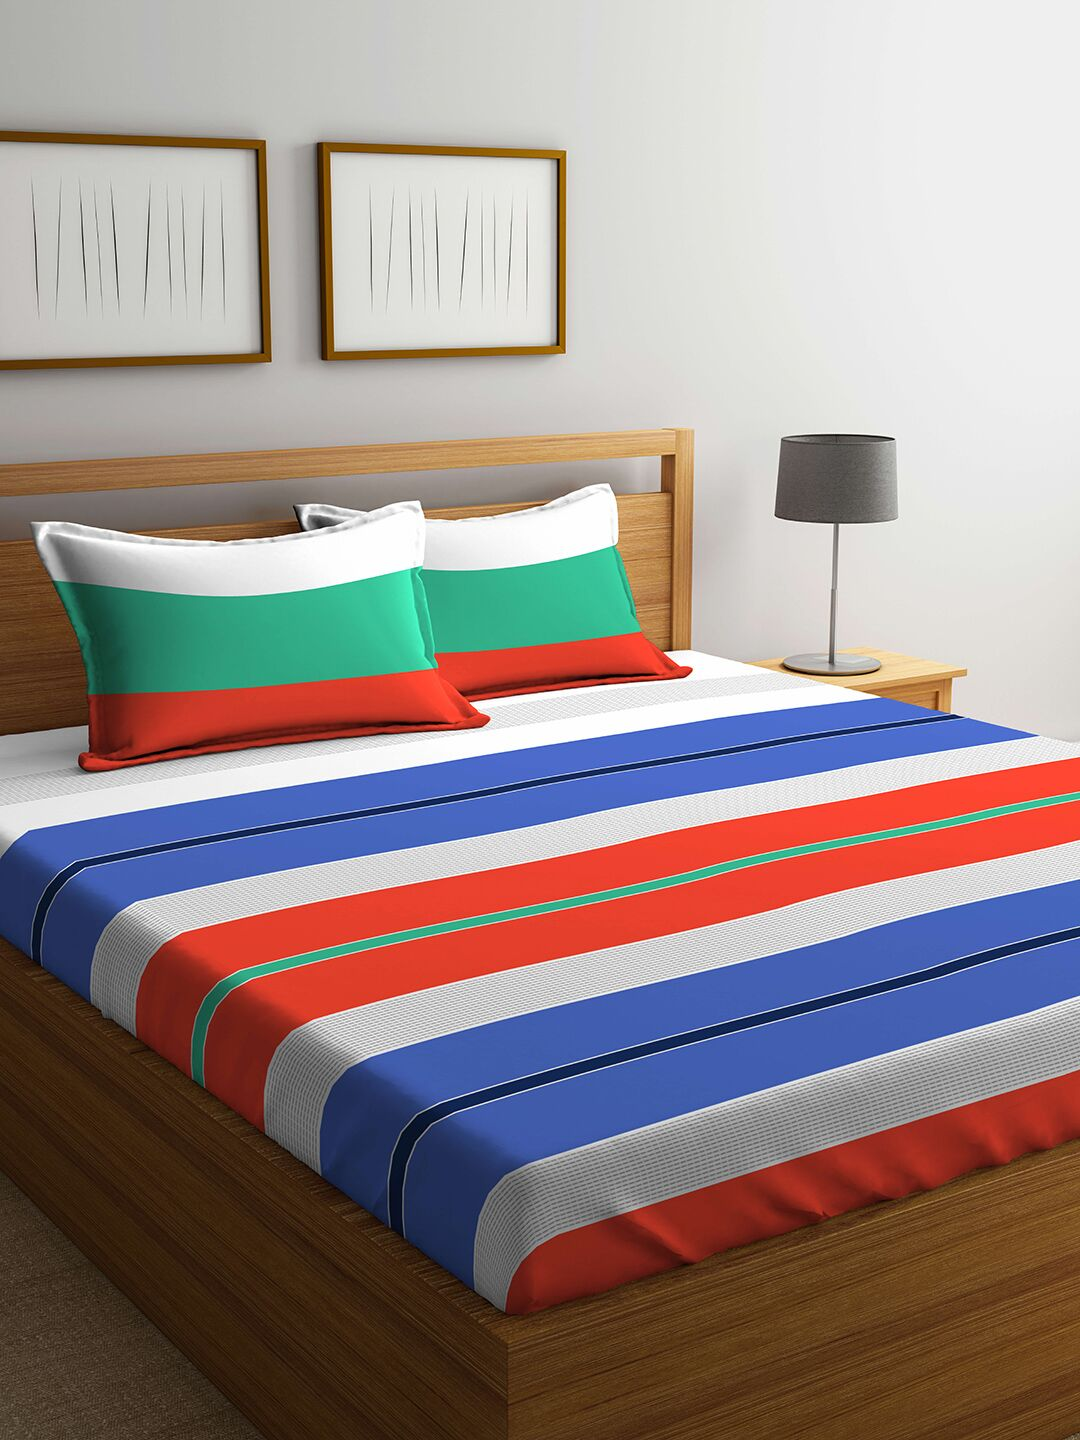 Verve Cotton Mix Bed Sheets in Multicolour Colour by Portico